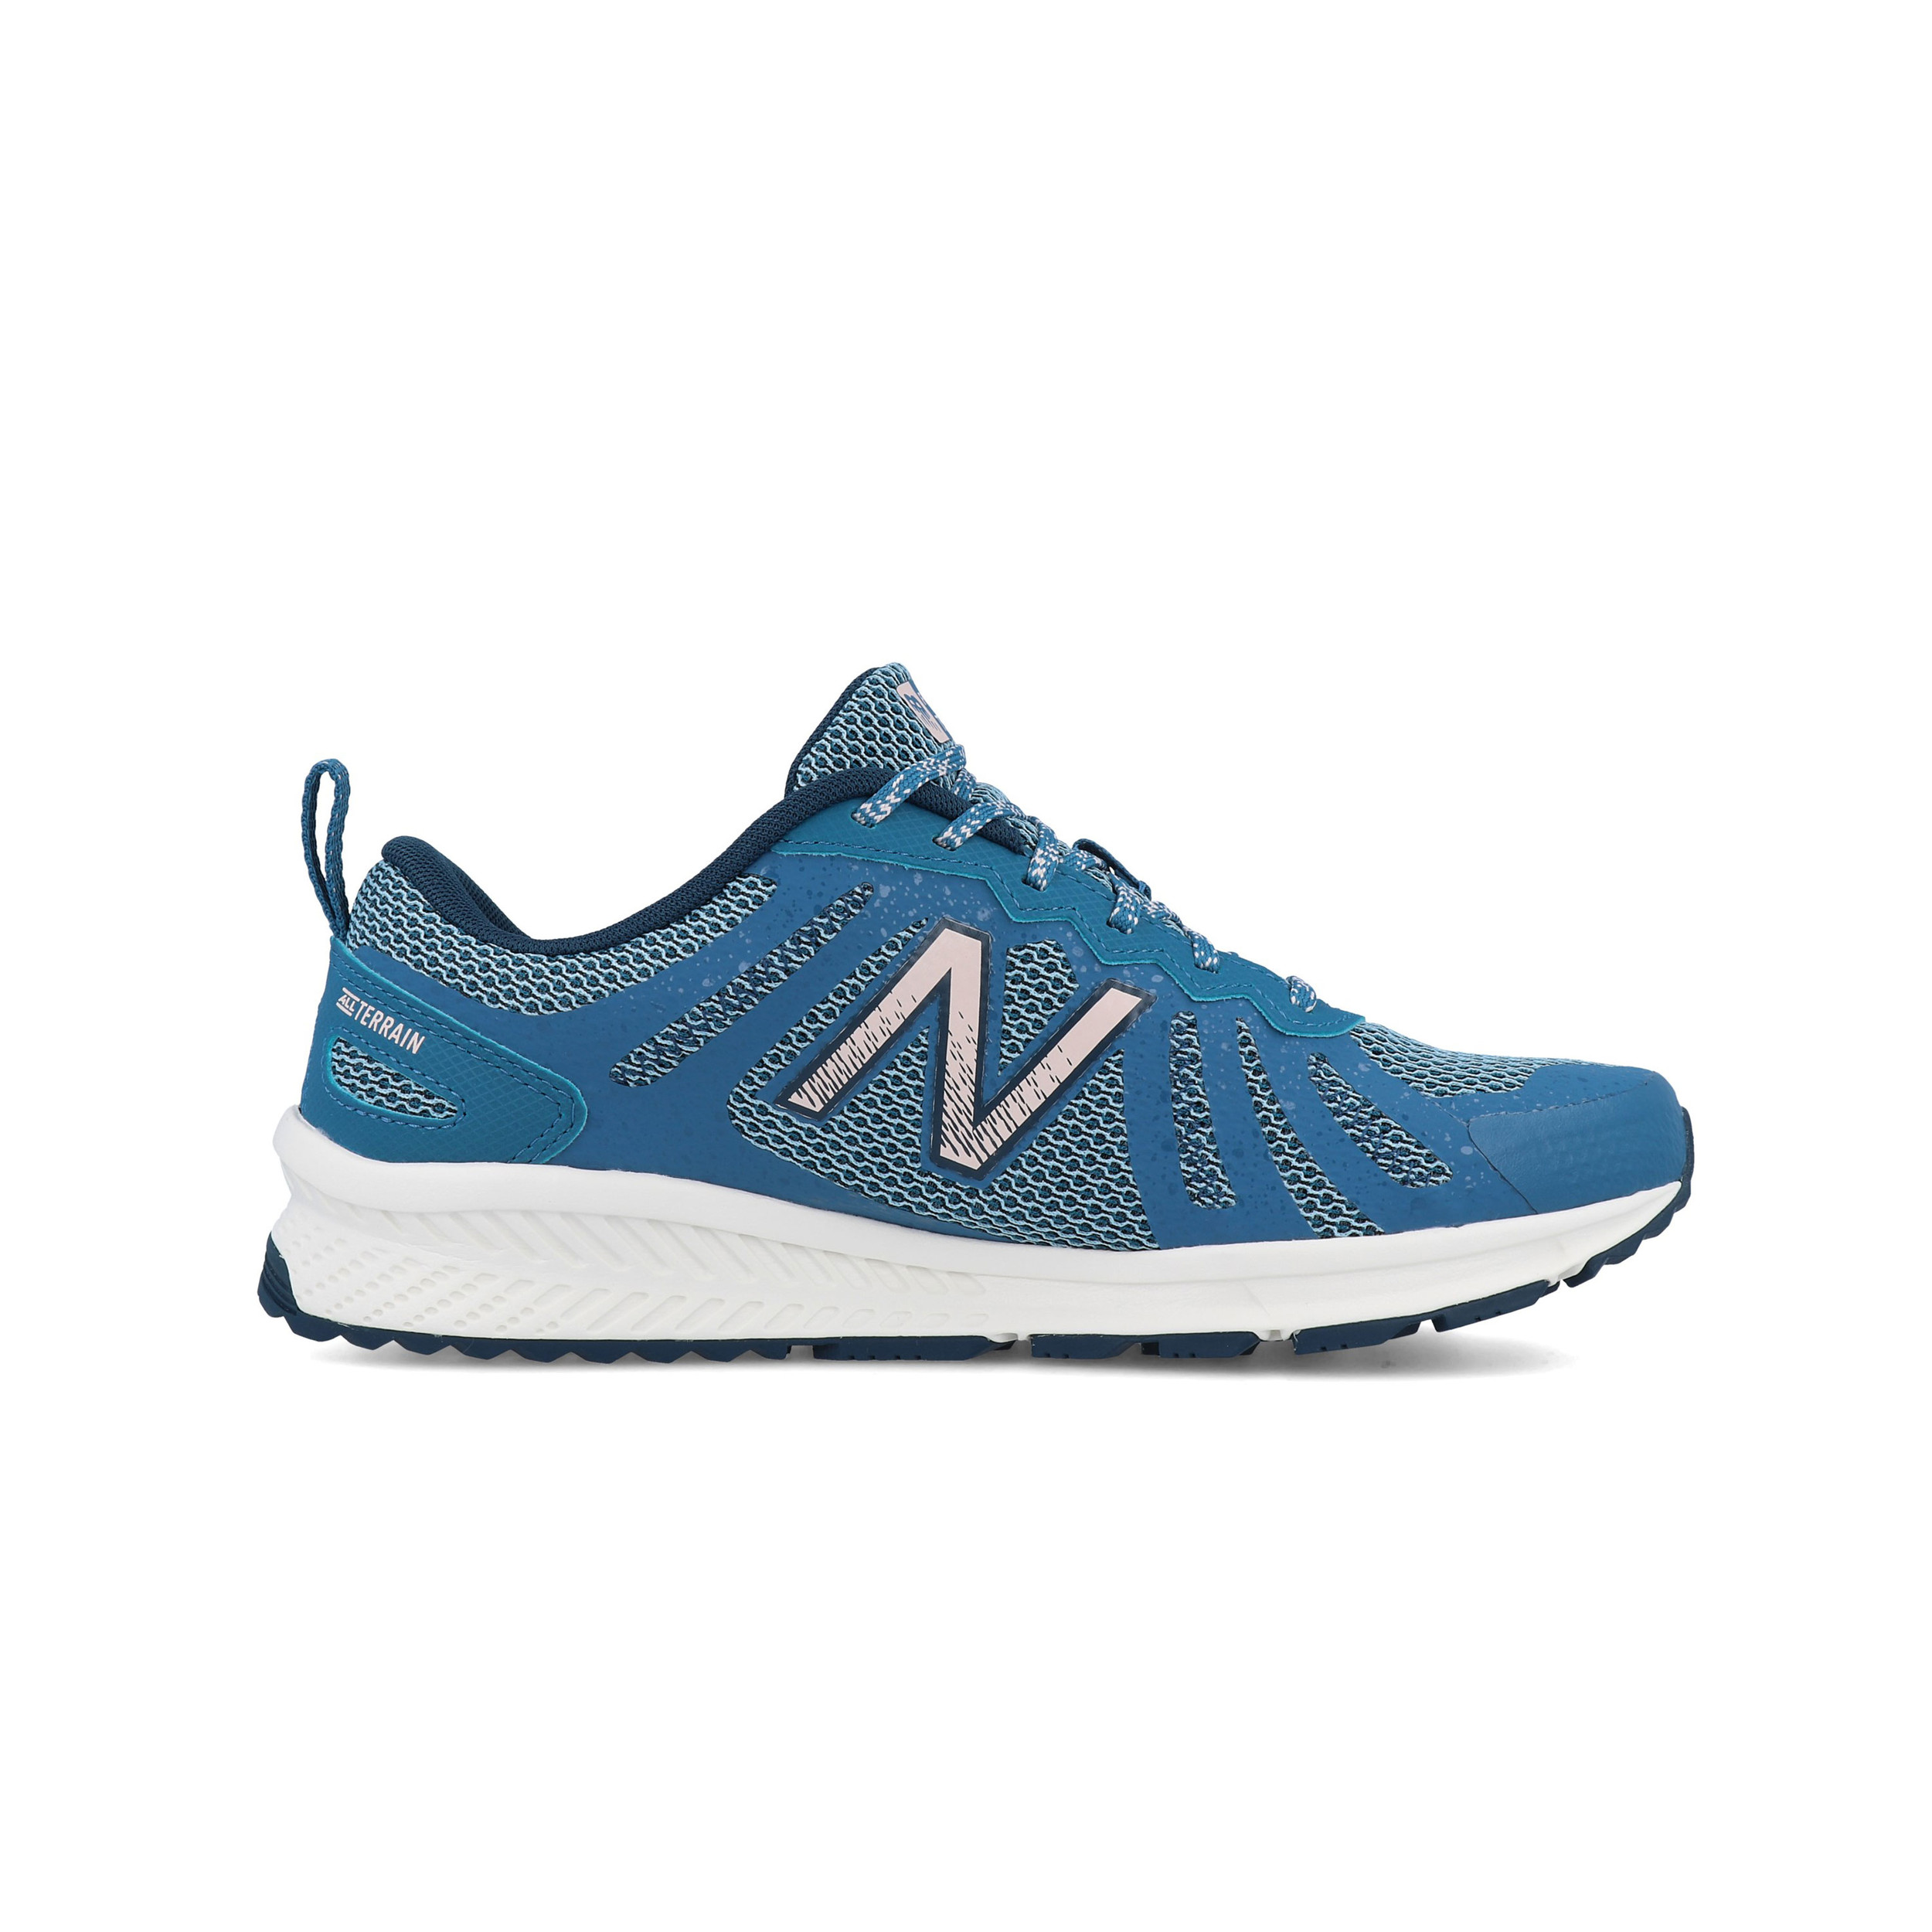 Details about New Balance Womens 590v4 Trail Running Shoes Trainers Sneakers Blue Sports